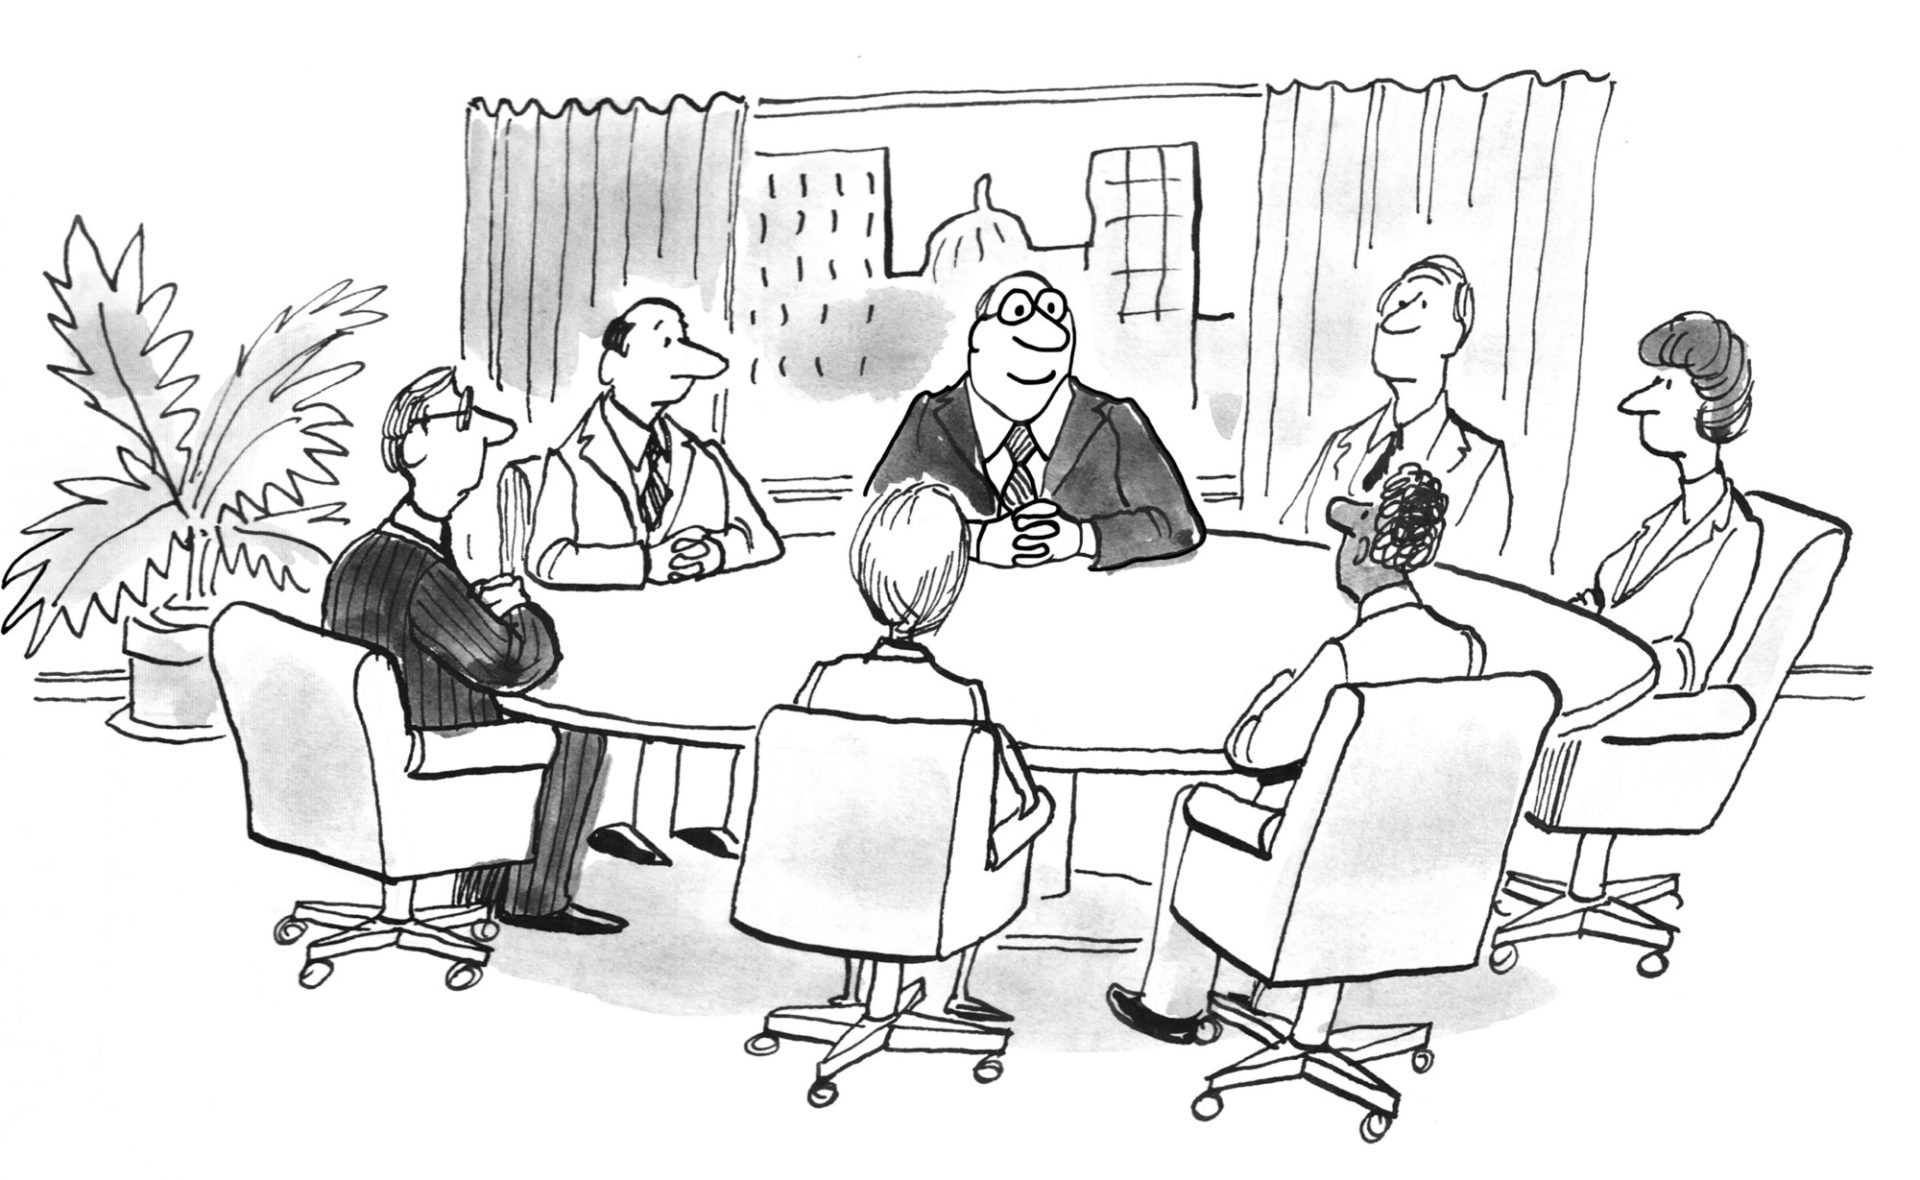 Difference Between Shareholder Meetings And Board Meetings